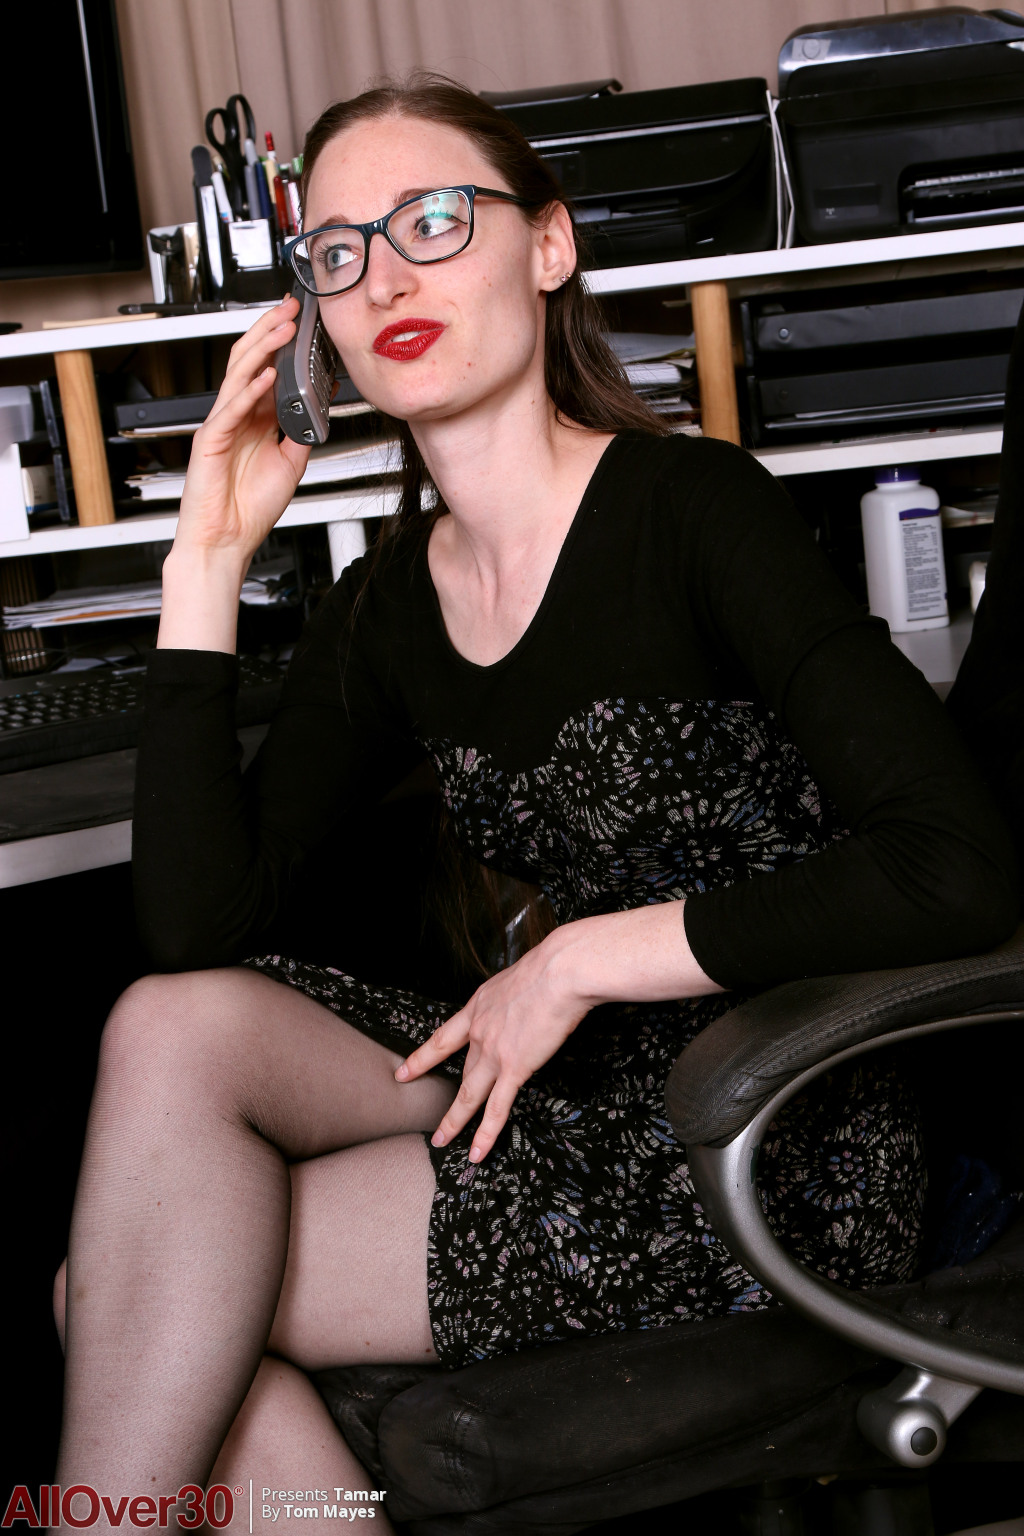 Gorgeous lithe secretary Tamar playing in her stockings and heels in the study